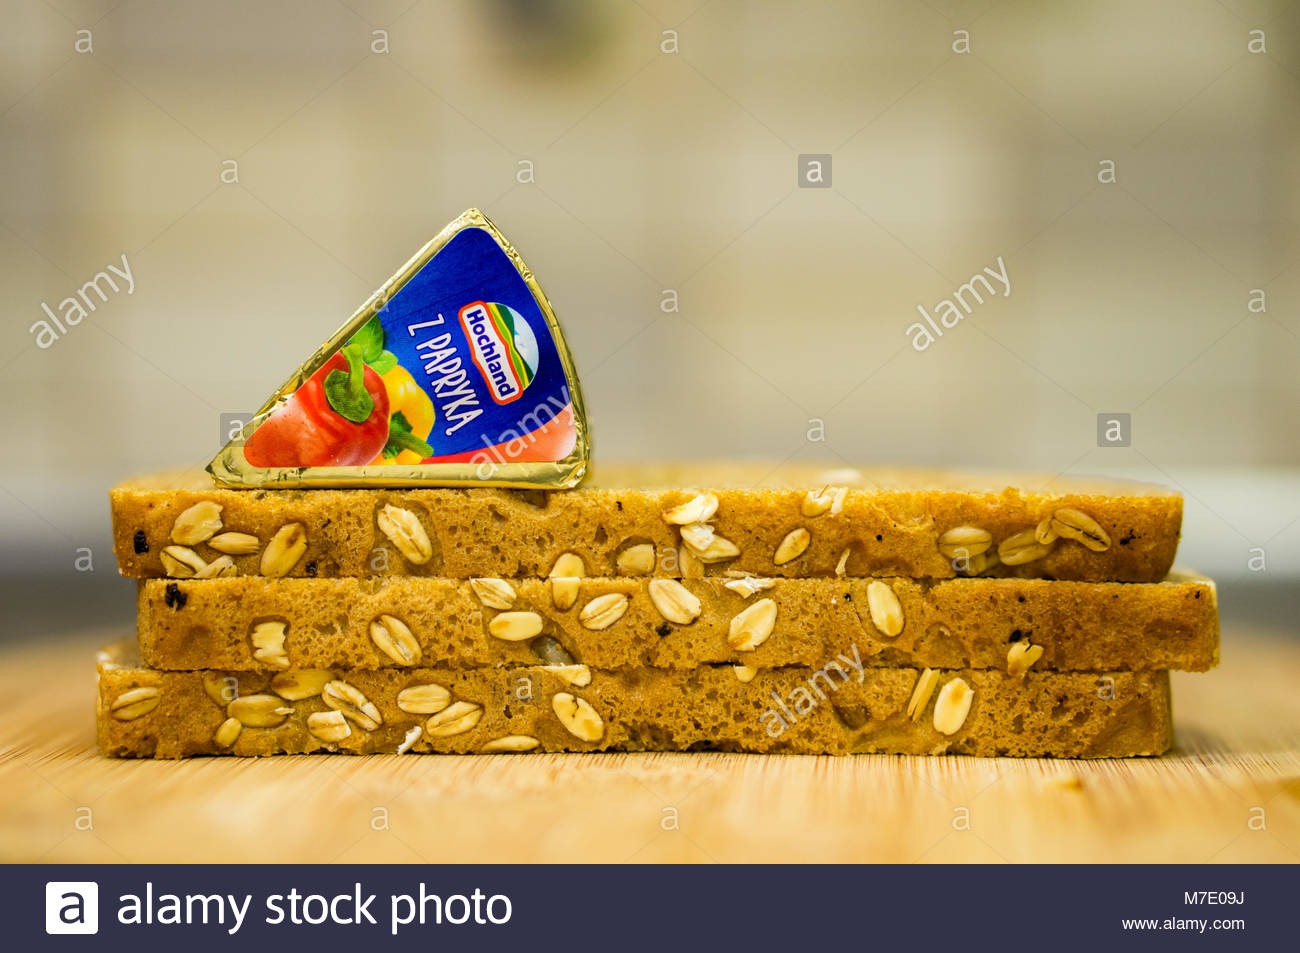 Poznan, Poland - March 07, 2018: Hochland cream cheese with red pepper on a pile of fresh bread in soft focus Stock Photo